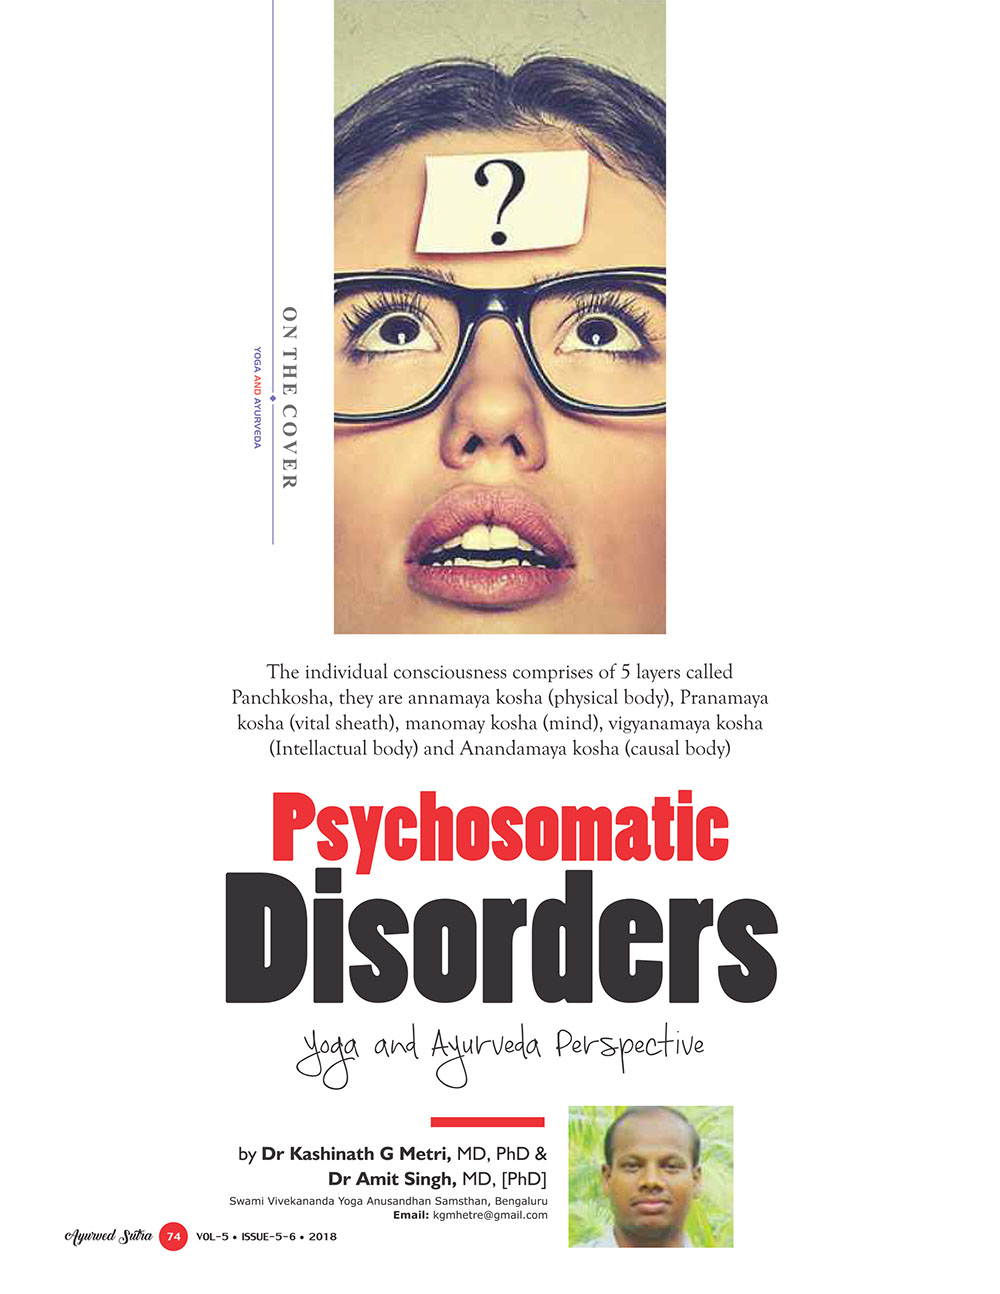 Ayurvedsutra Vol 05 issue 05 06 76 - Psychosomatic Disorders: Yoga and Ayurveda Perspective